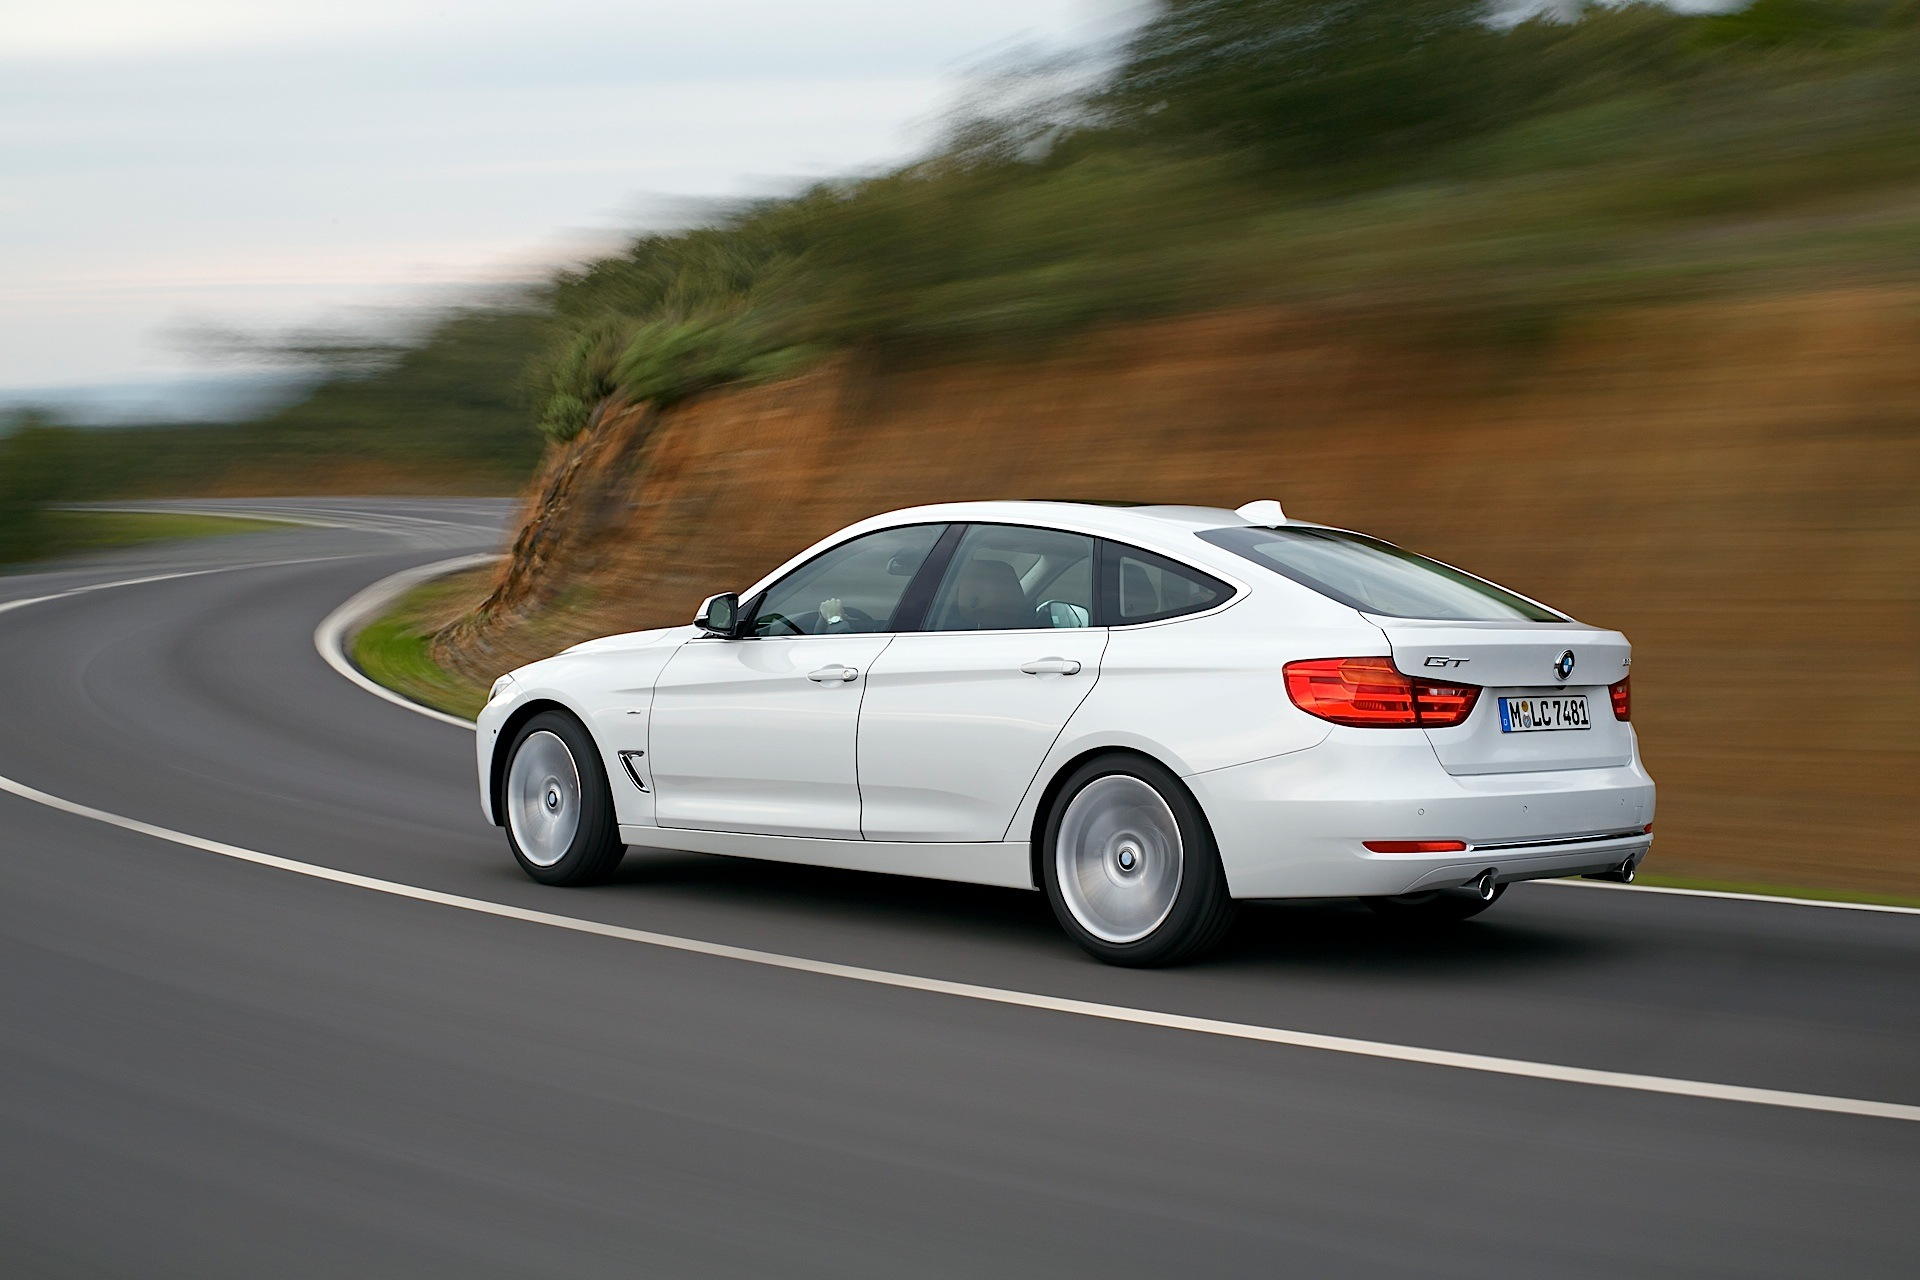 BMW 3 Series Gran Turismo Photo Gallery #6/40